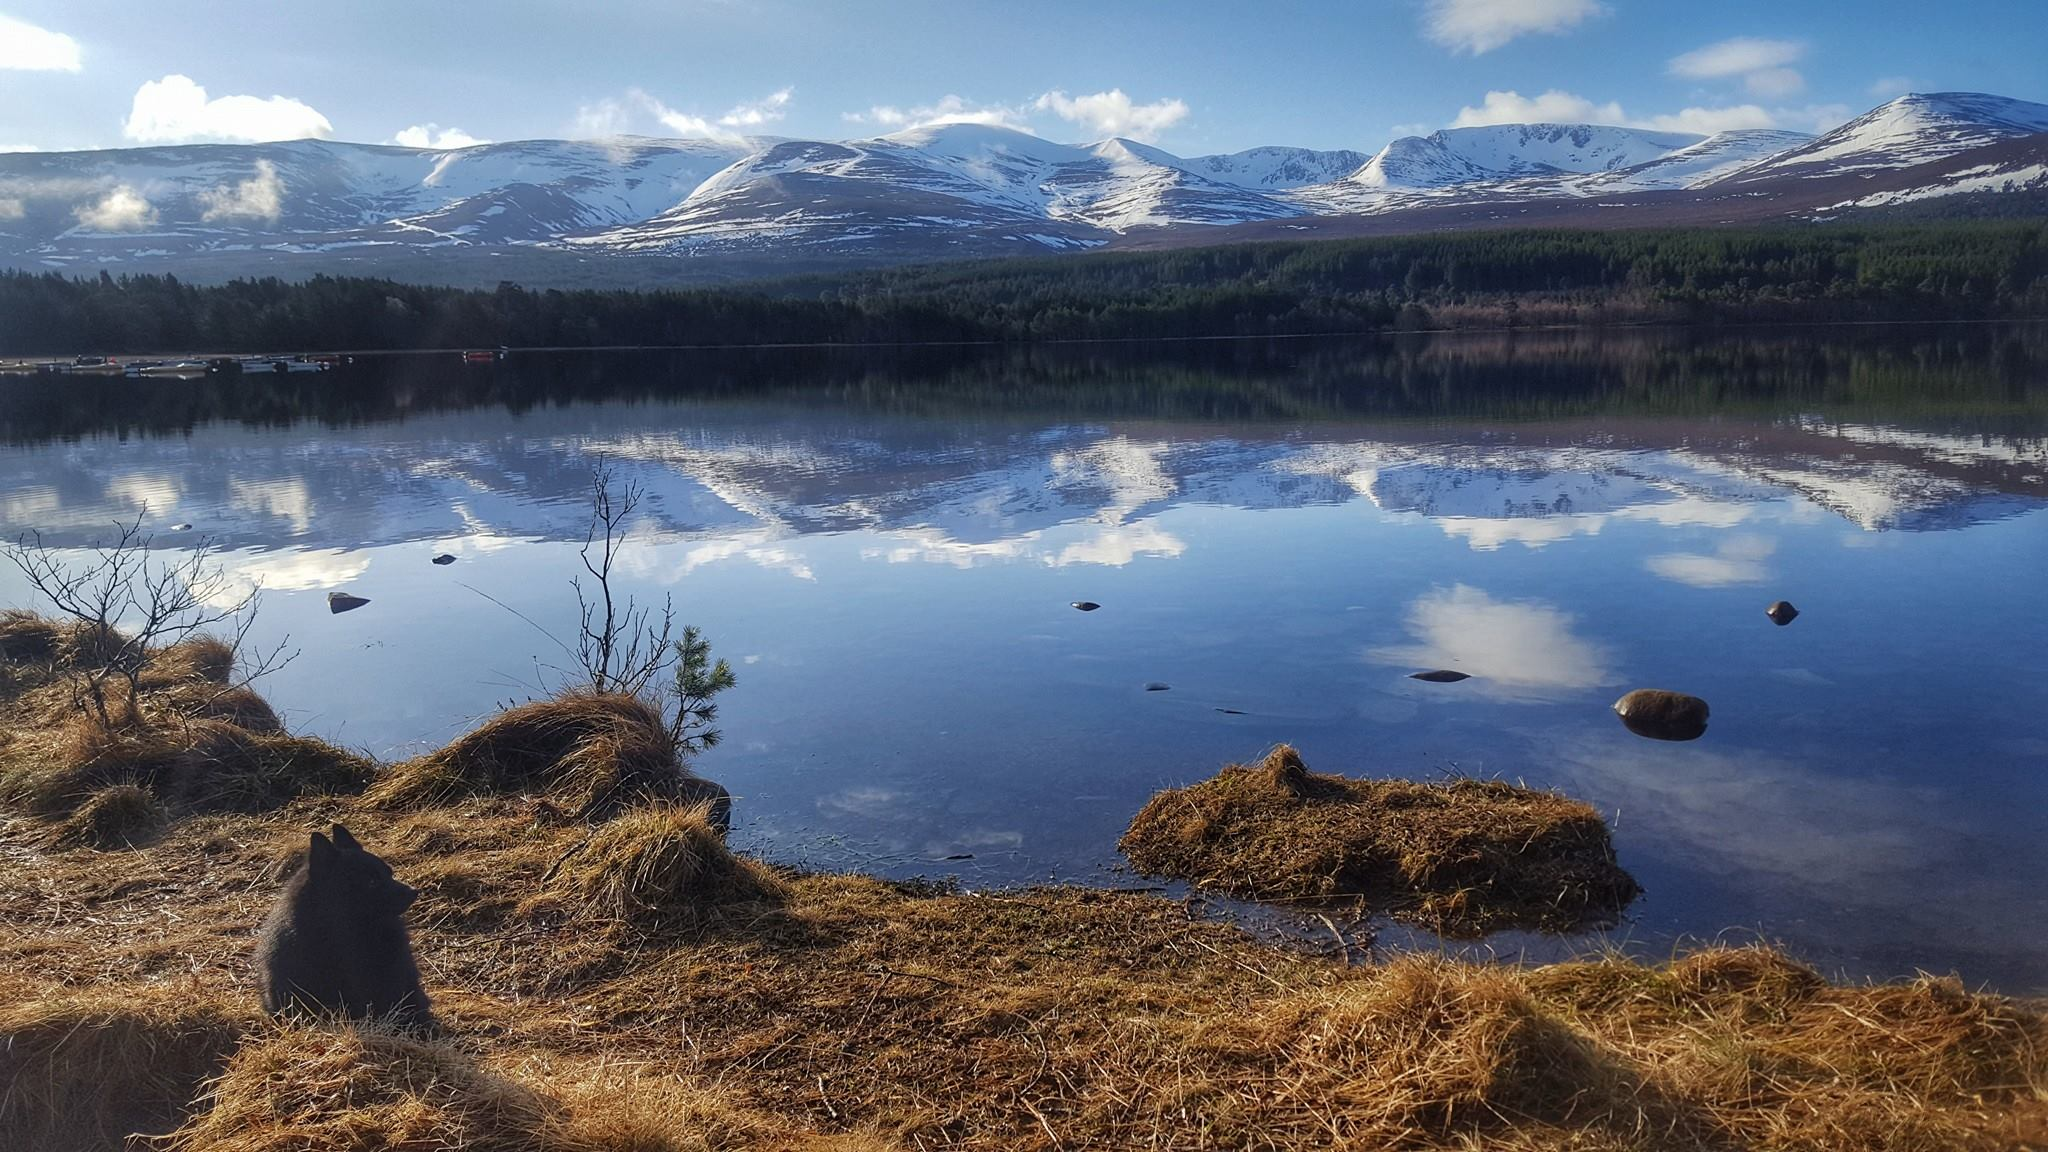 Loch Morlich, looking towards the Cairngorms